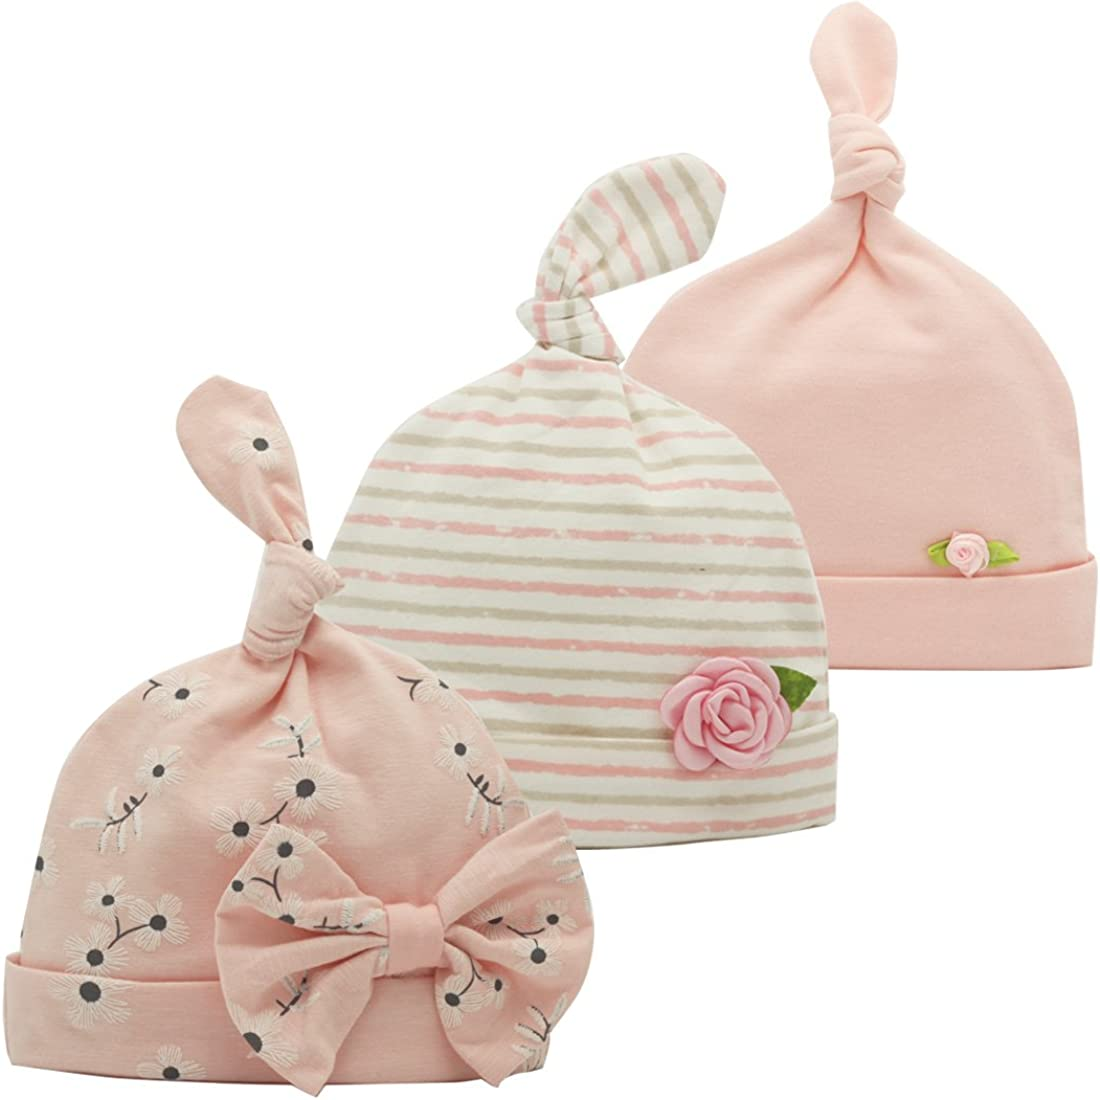 Newborn Beanie Baby Hats 0-6 Months 6-12 Months Girl Bow Caps Hospital Beanie Set